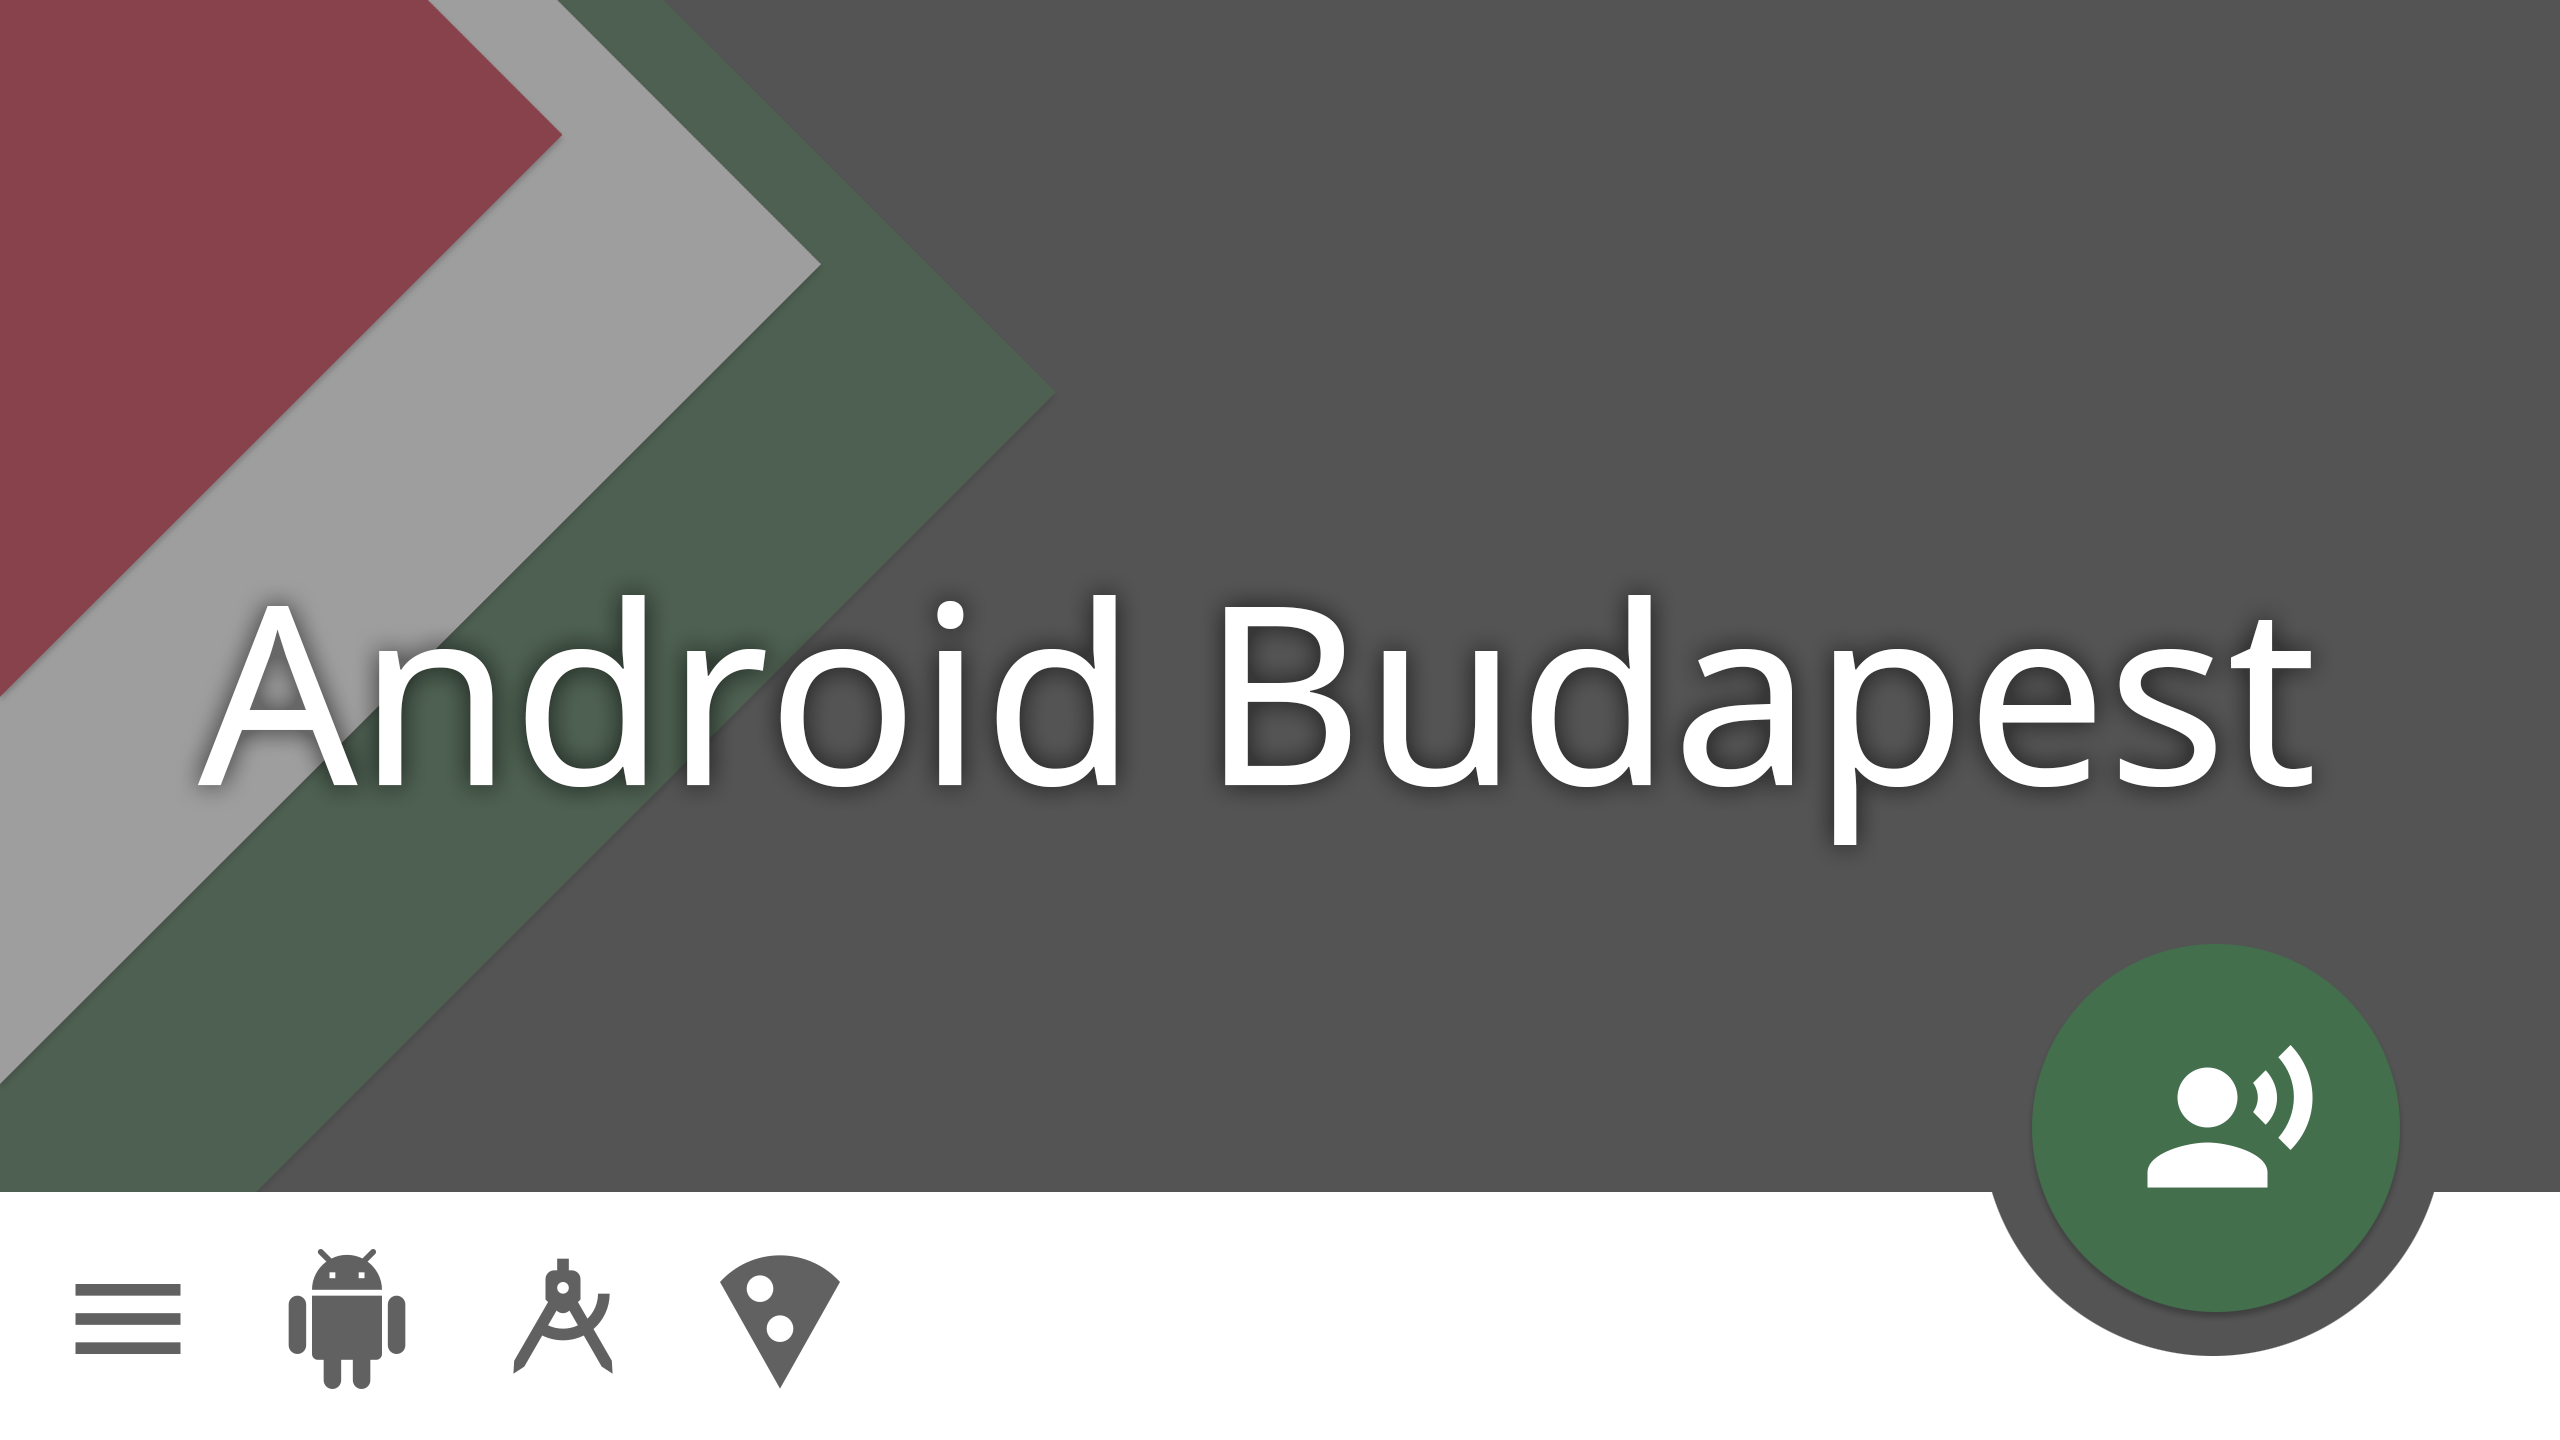 Android Budapest